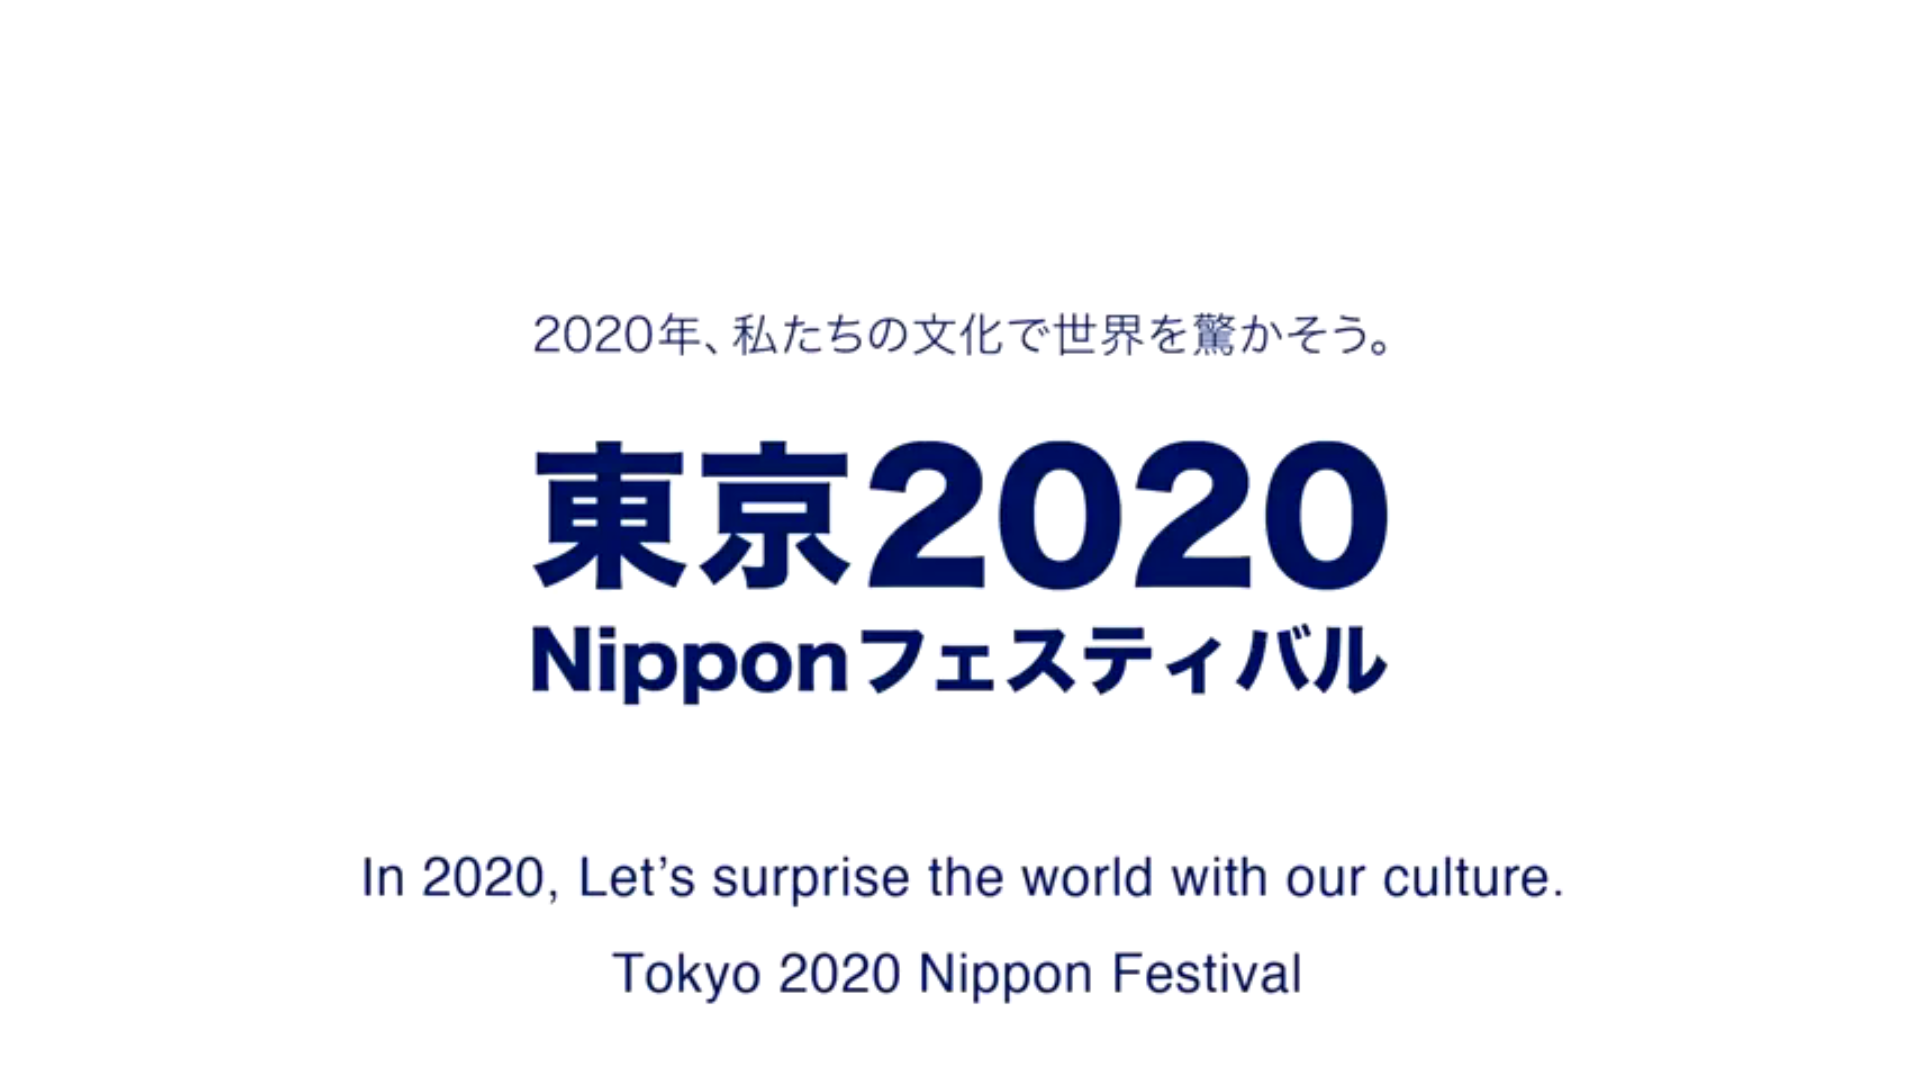 Tokyo 2020 hold first working group meeting to plan festival promoting Japanese culture